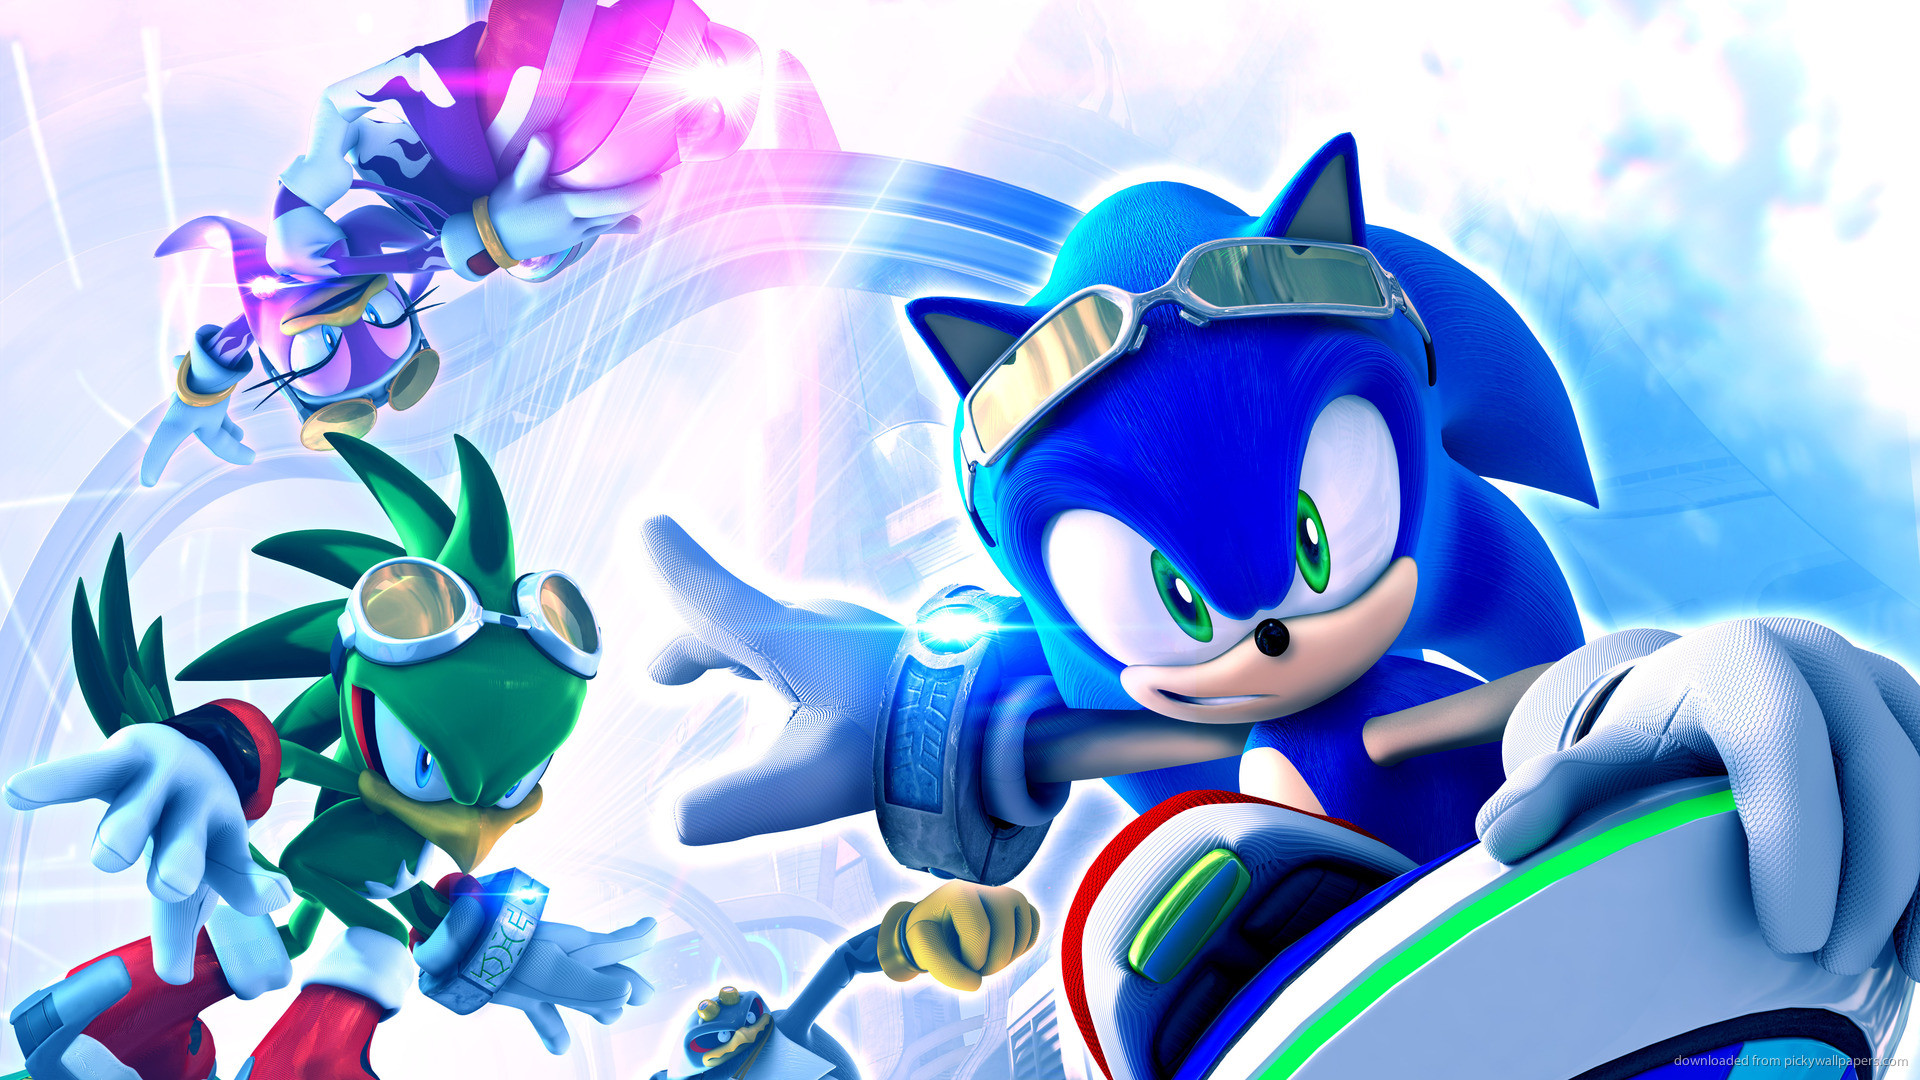 Sonic The Hedgehog On The Board picture